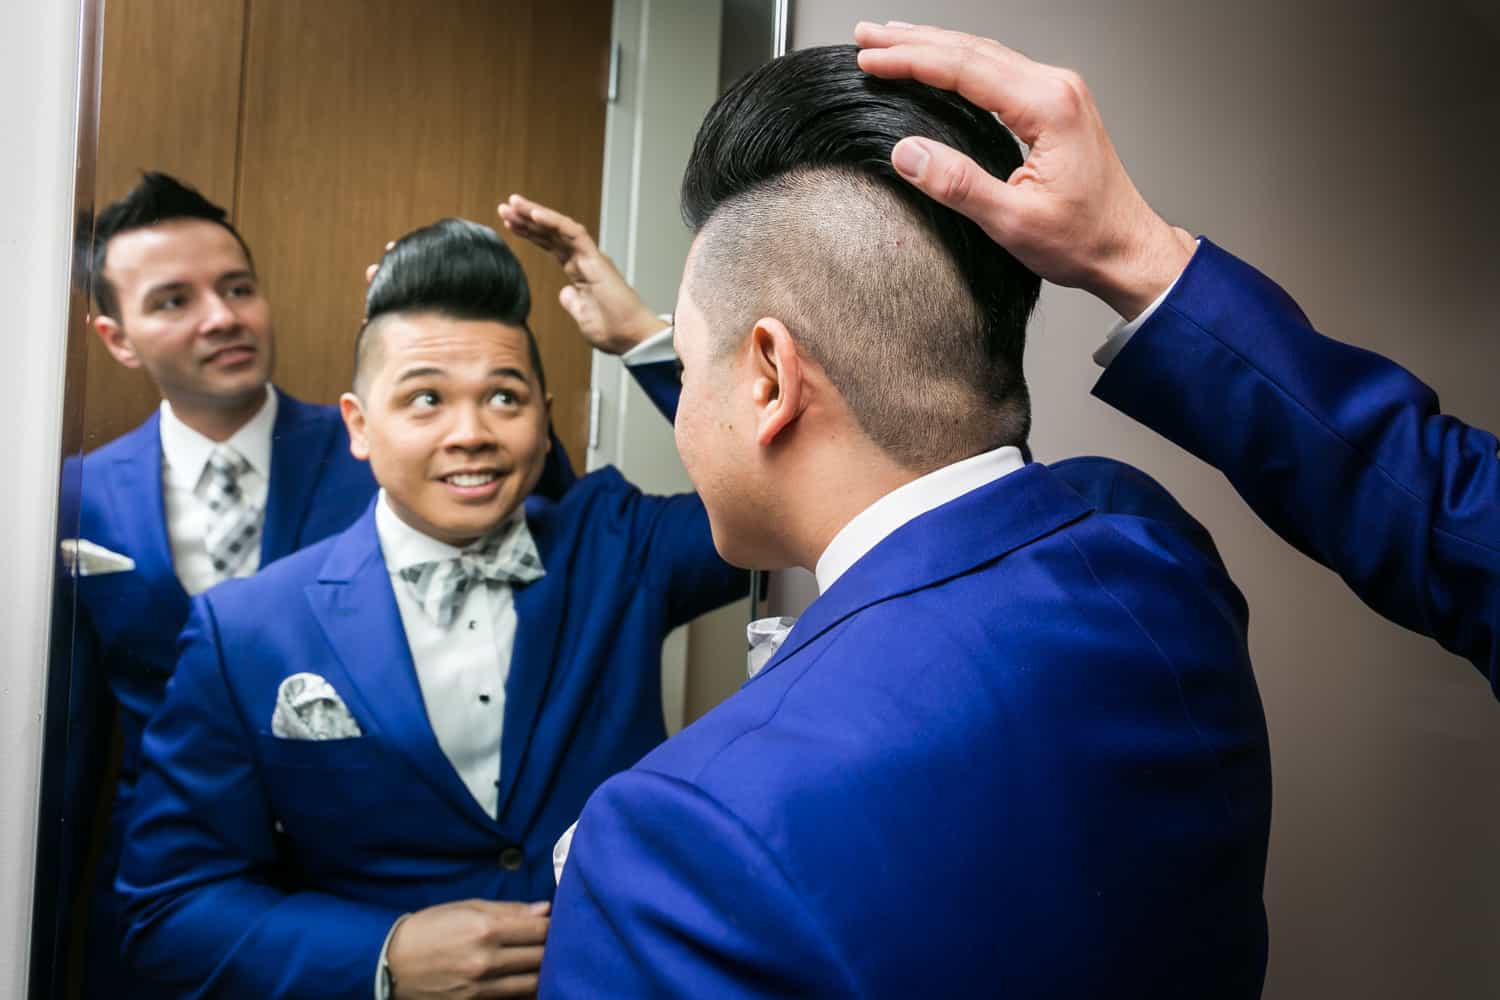 Two grooms looking in mirror and one groom touching the other's hair